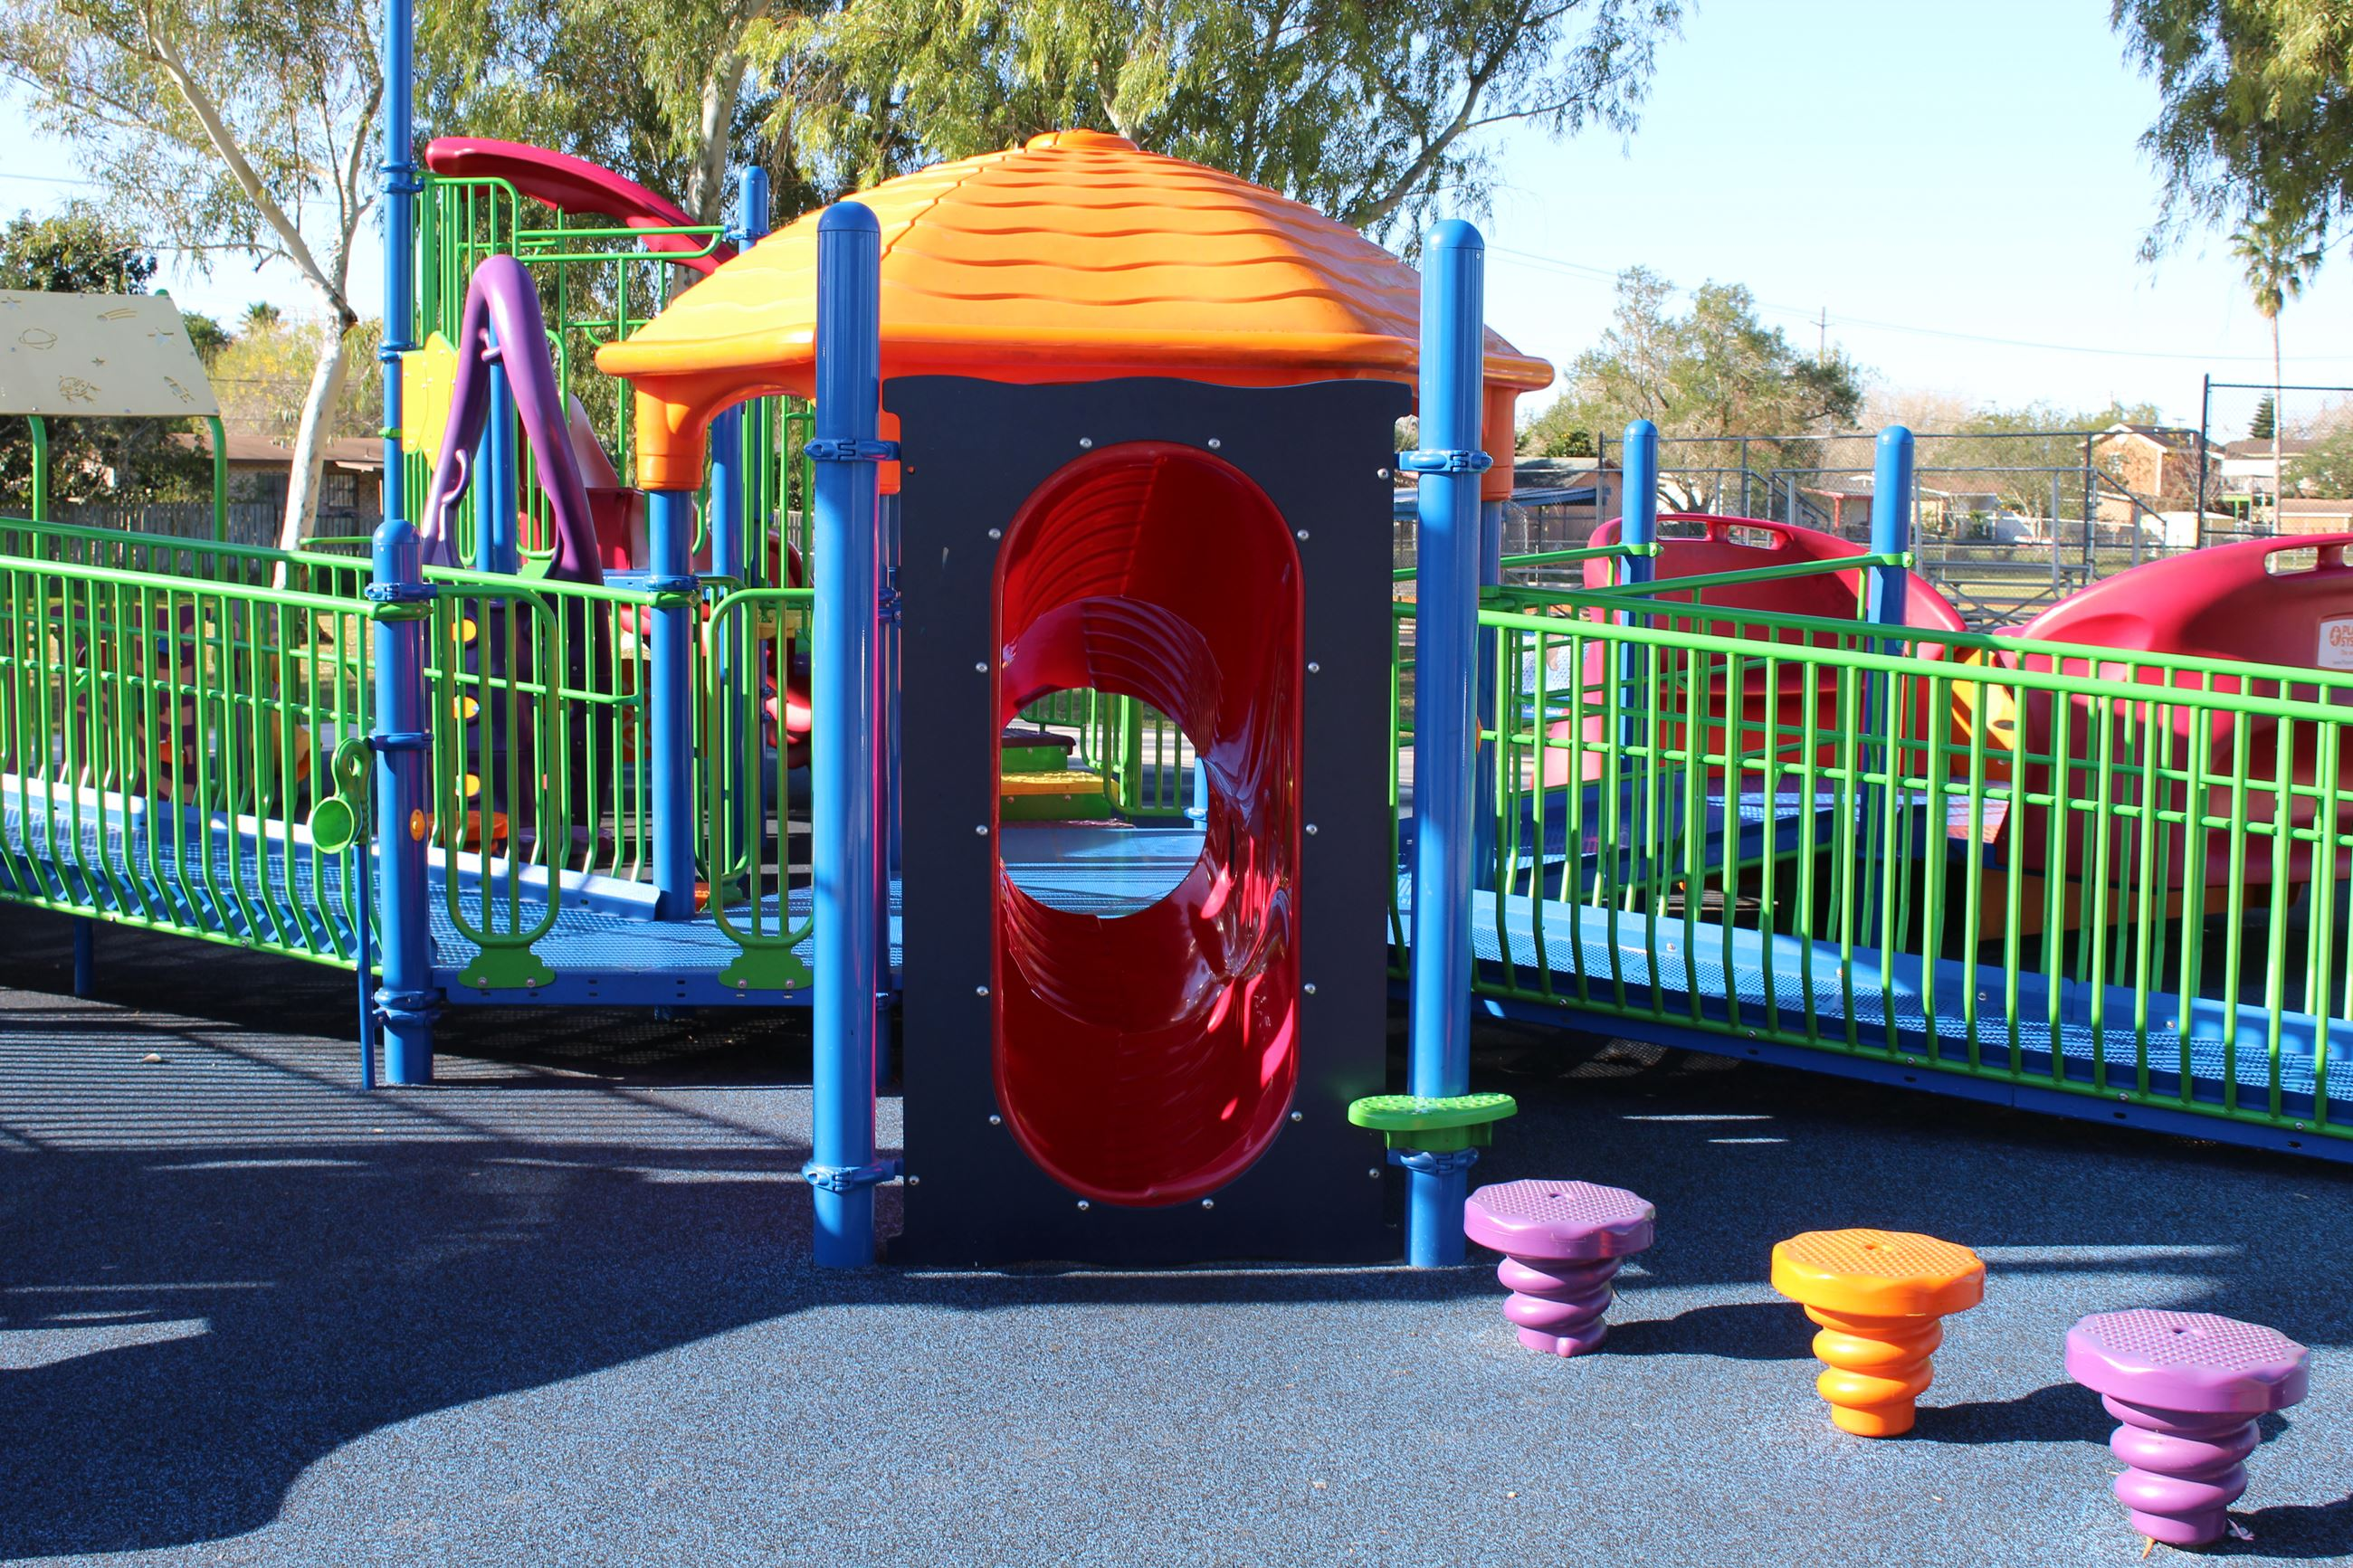 Oliveira Park All inclusive Playground 2-5 year old